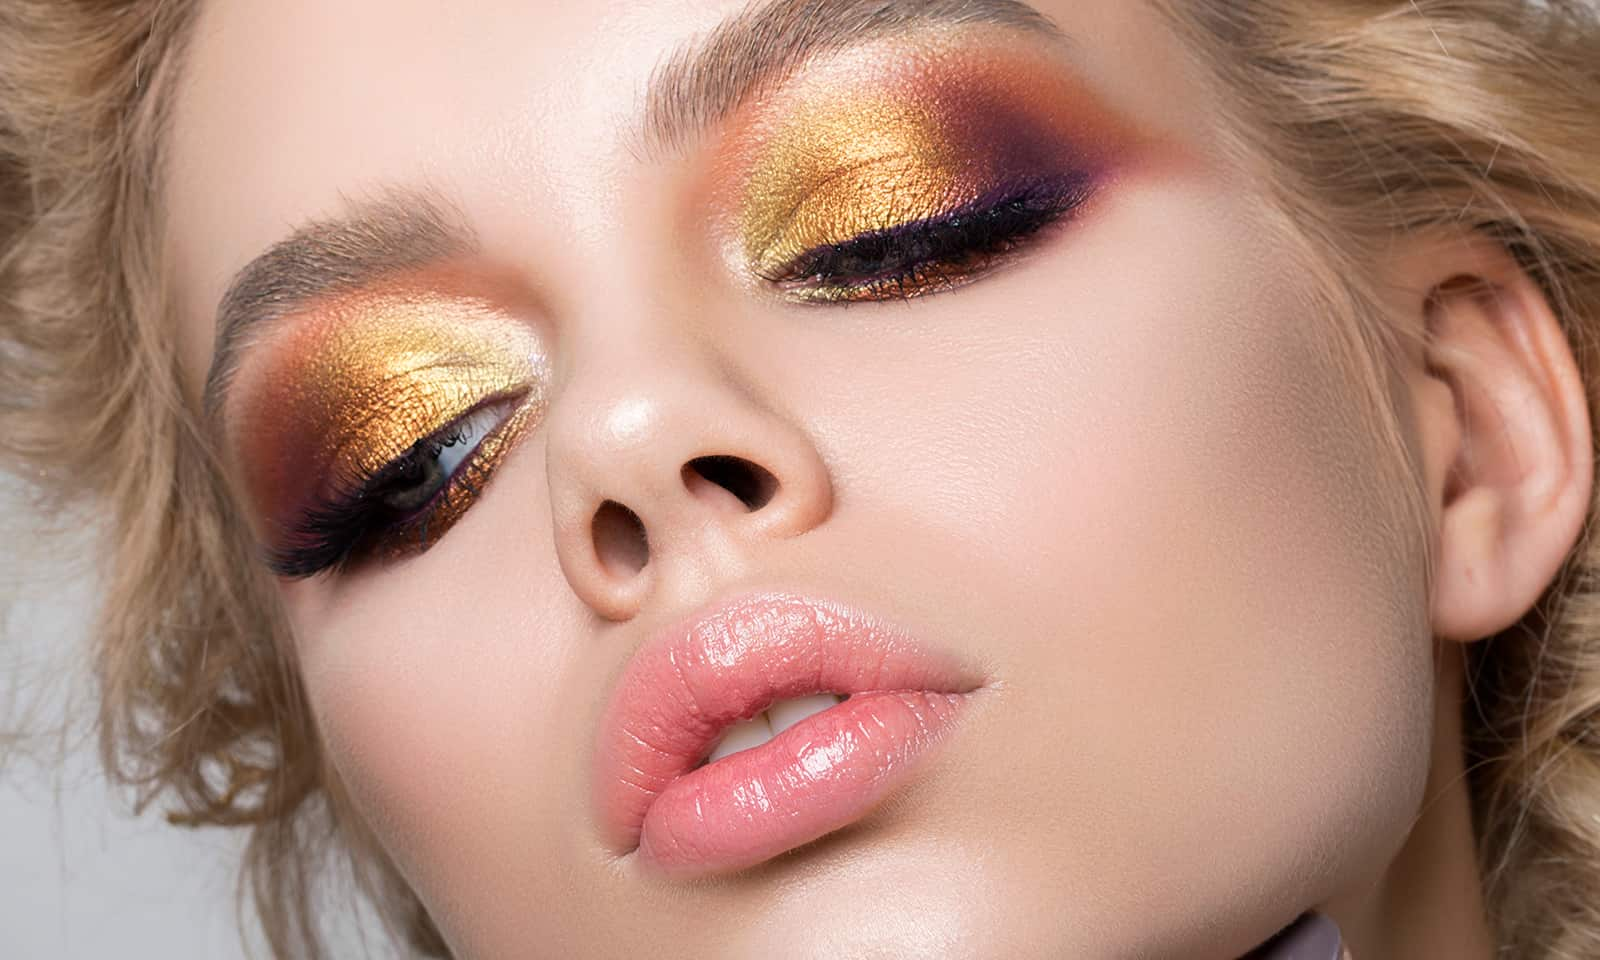 The-History-of-Makeup-From-Controversy-to-Mainstream-main-image